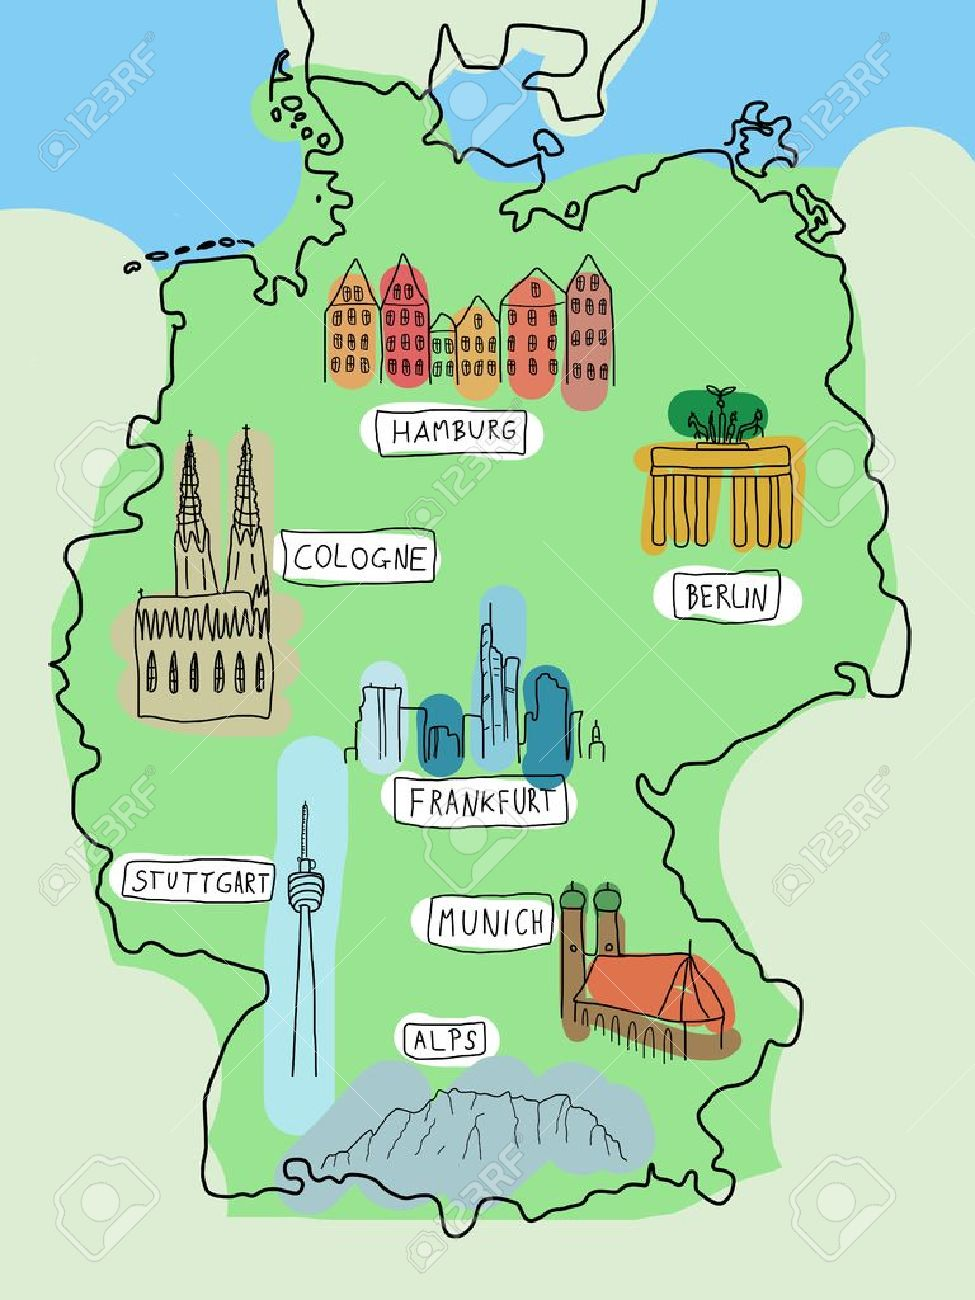 Cologne On Map Of Germany.Germany Doodle Map With Famous Places Berlin Hamburg Cologne